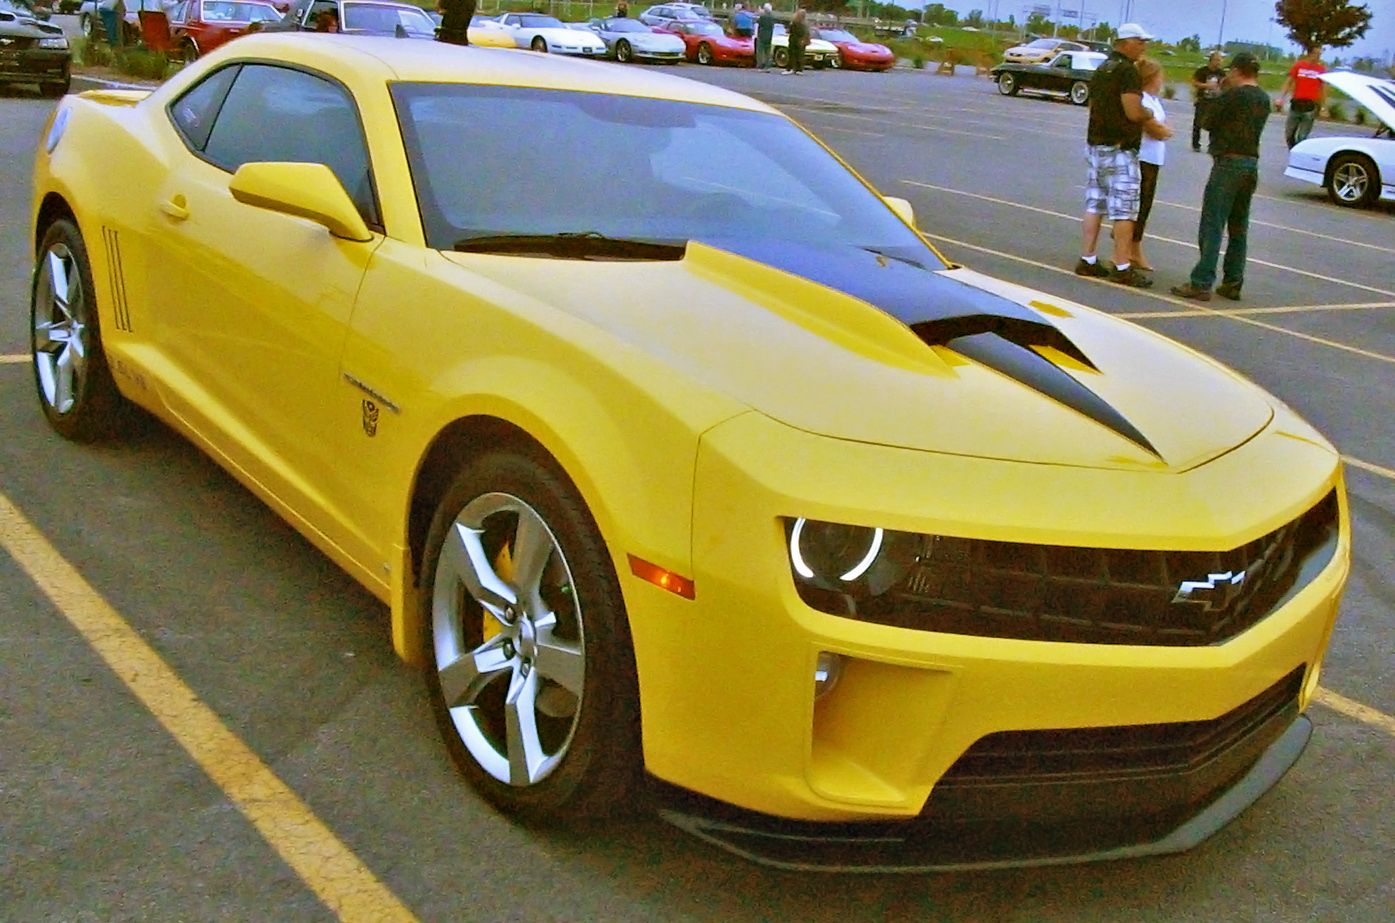 Awesome awesome chevrolet camaro 2014 price in canada